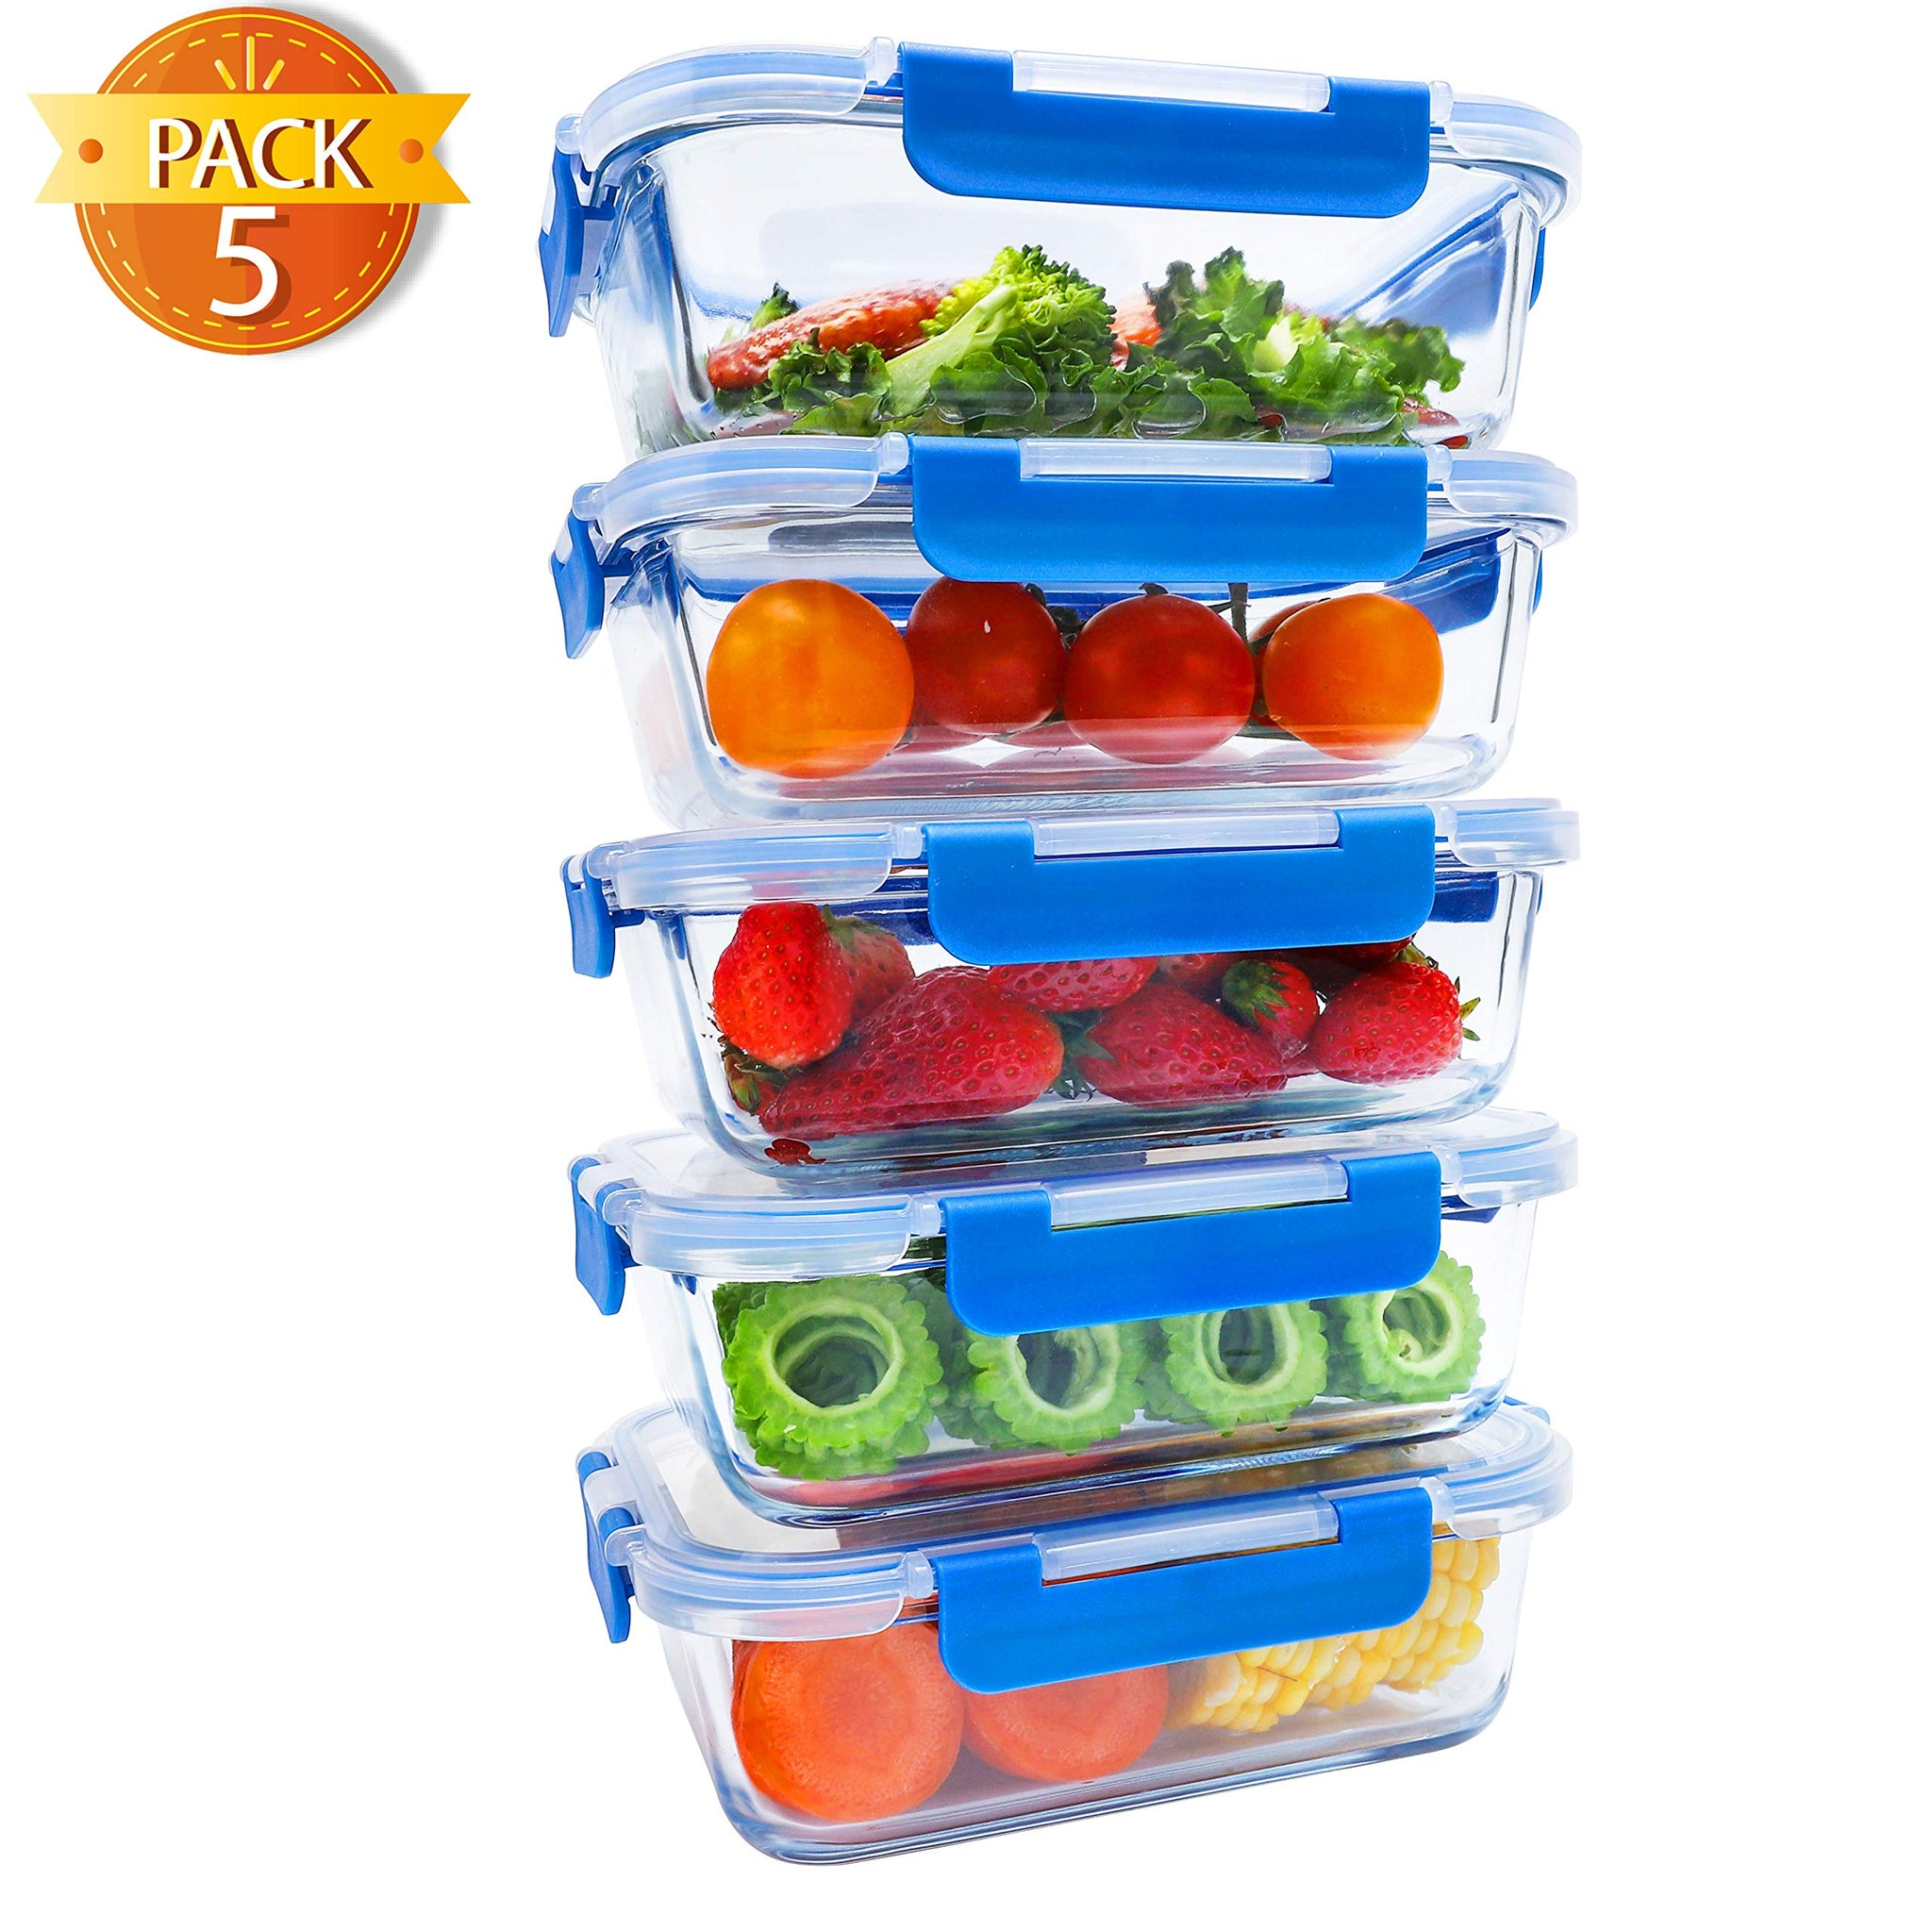 BlueHills Premium Glass Meal Prep Lunch Containers with Green Snap Lock Lids Glass Food Containers BPA-Free Oven Freezer Dishwasher Safe 5 pack set 10 pieces 4.5 Cups 36 Oz. (G001 One Compartment)